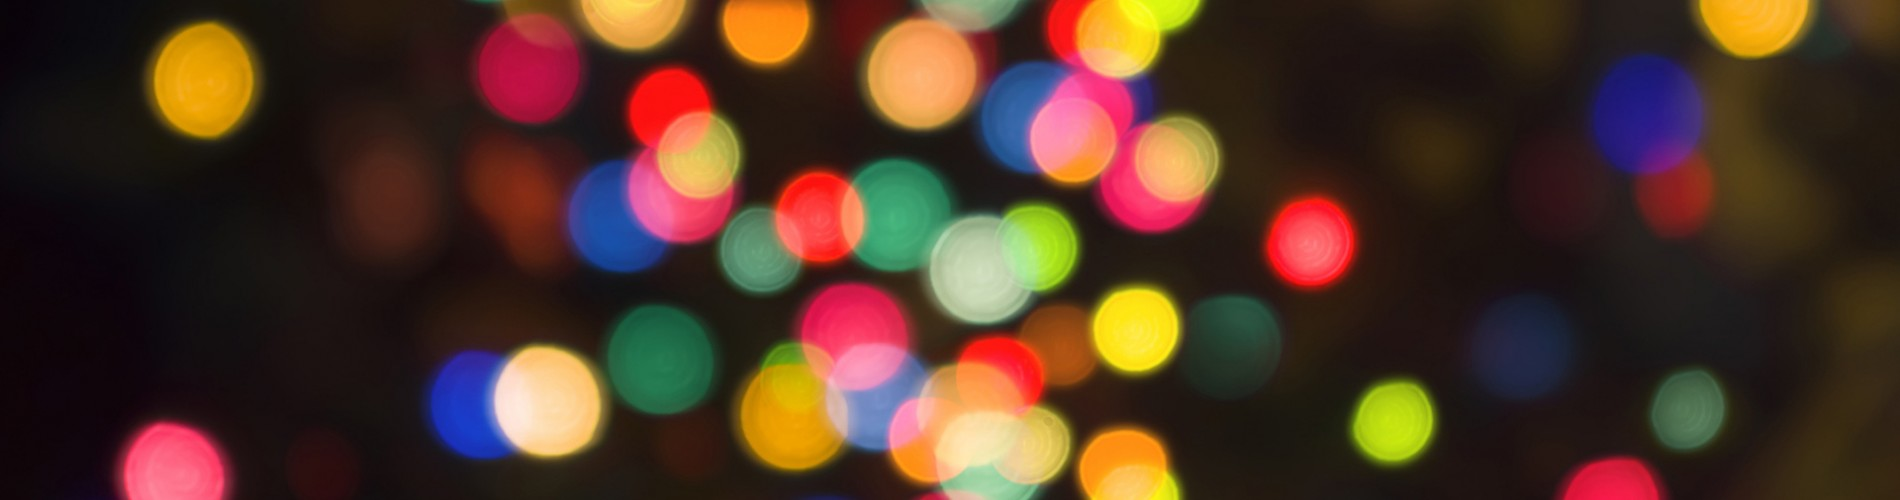 sparkly abstract image for Independent School Awards